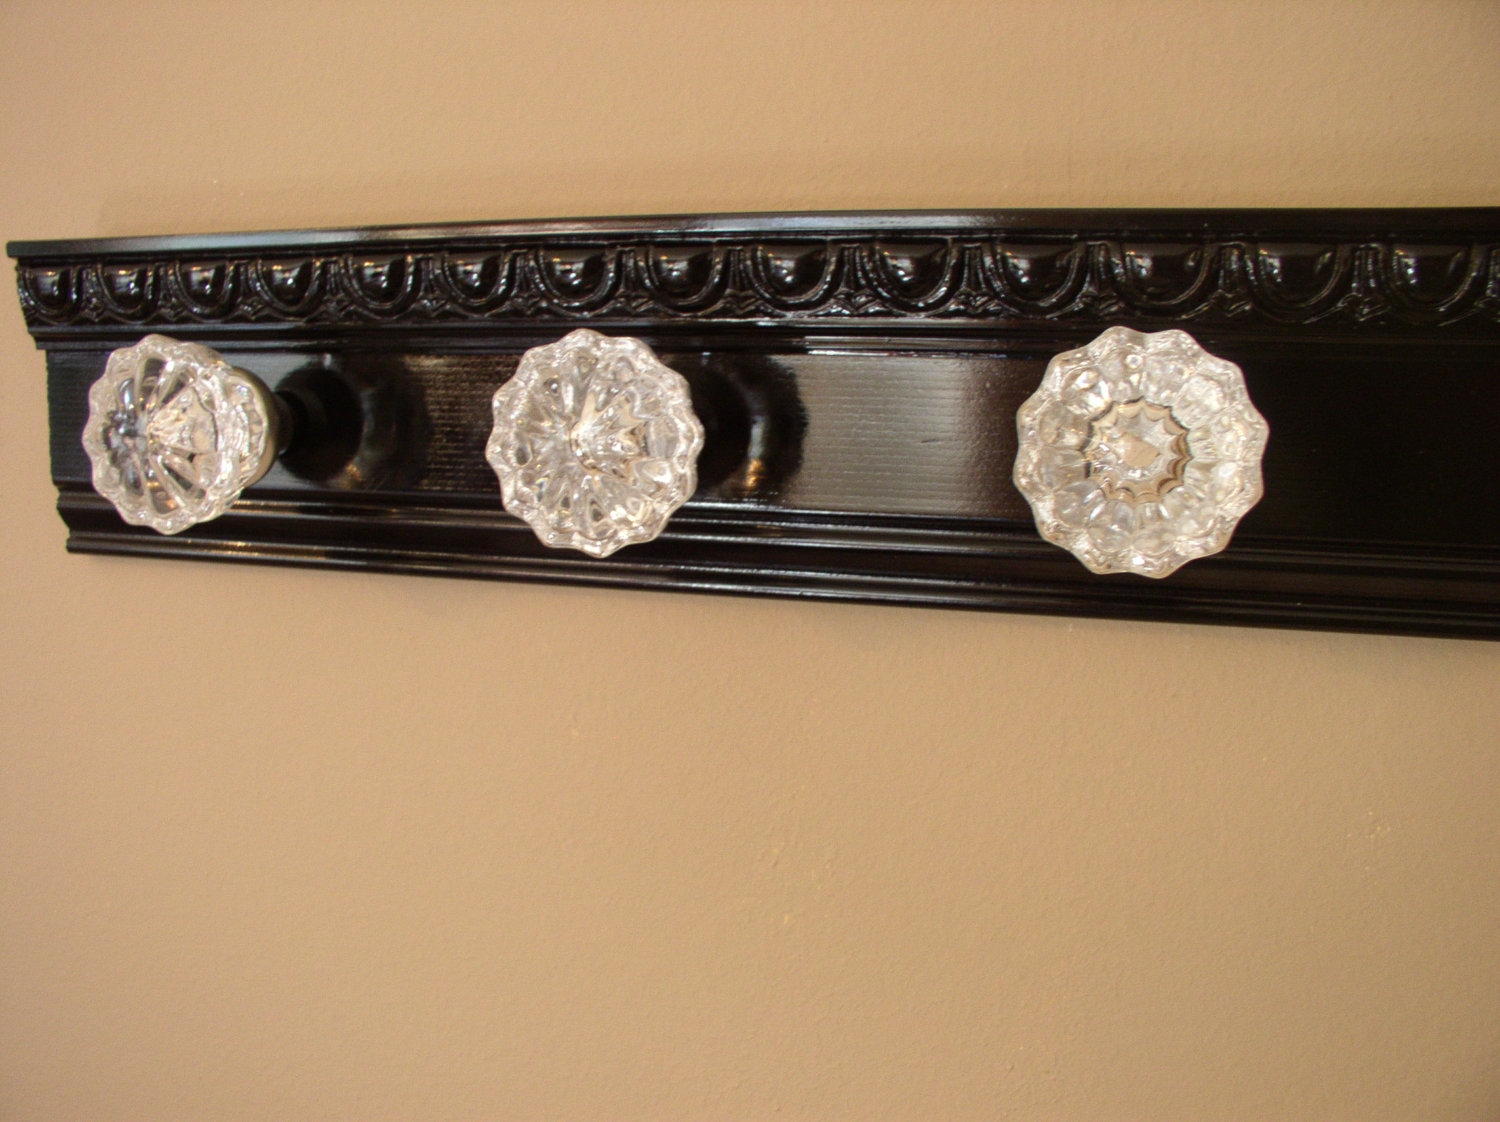 Crystal Door Knob Coat Rackbeautiful coat rack with 3 glass door knobs and decorative